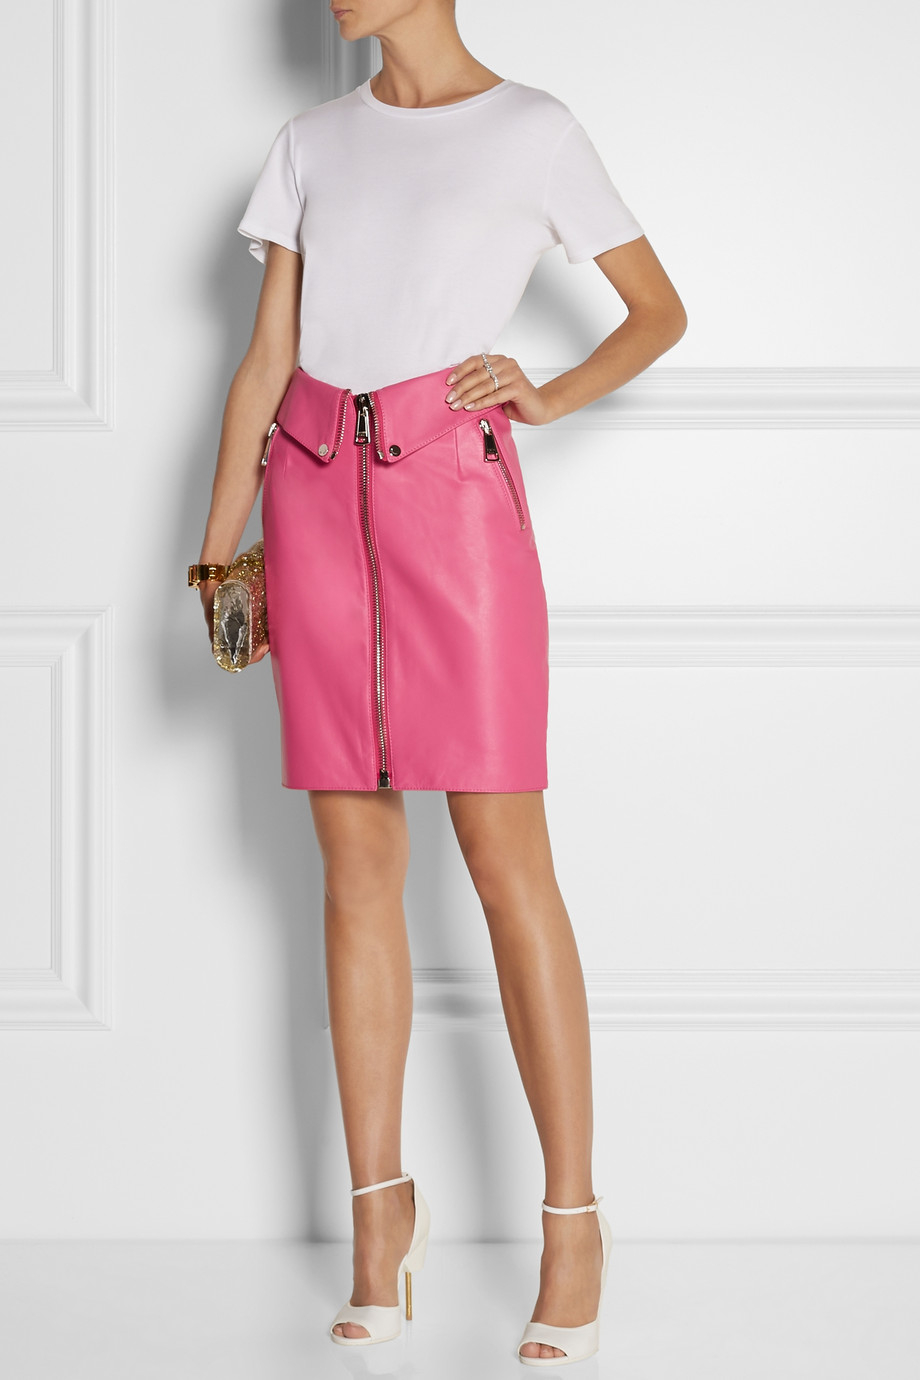 Moschino Leather Skirt in Pink | Lyst